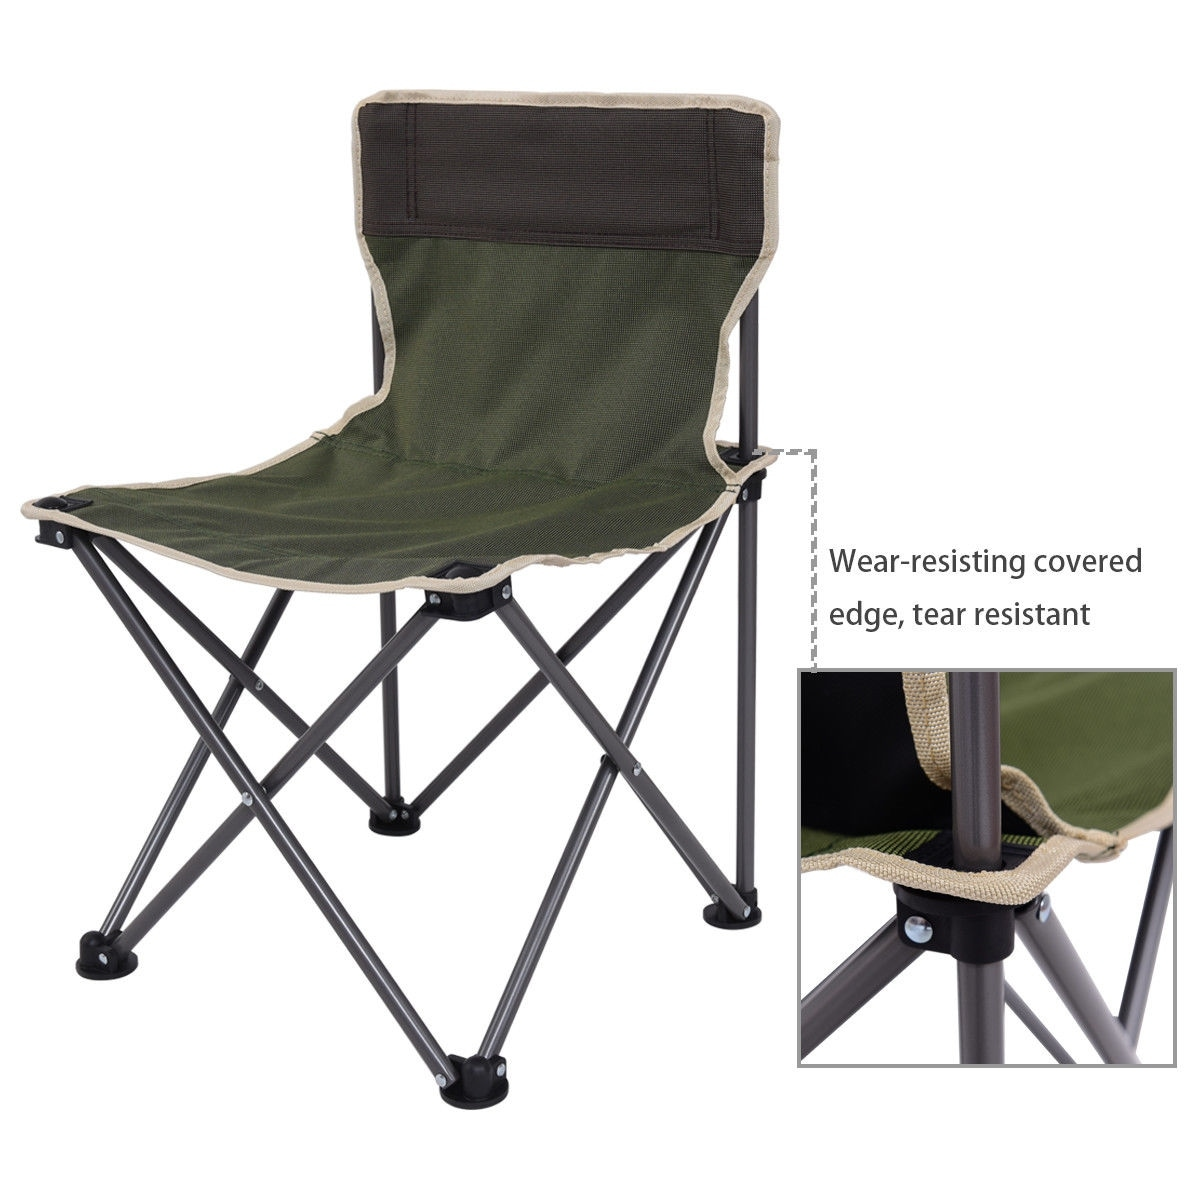 Costway Portable Folding Table Chairs Set Outdoor Camp Beach Picnic W Carrying Bag On Free Shipping Today 20461937